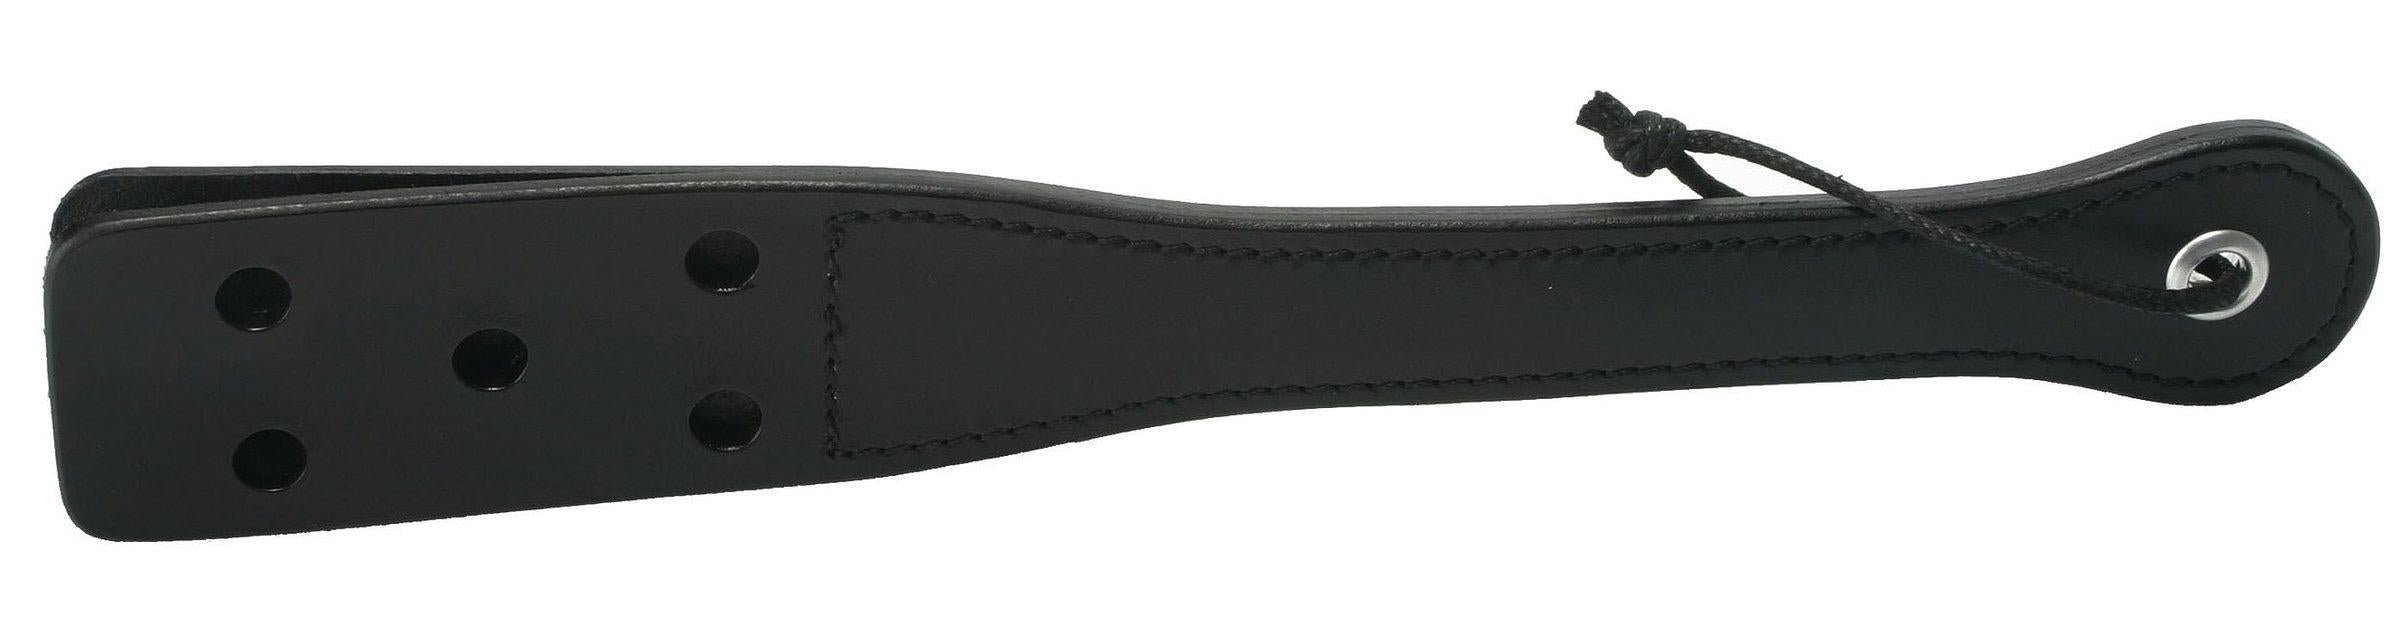 12 Inch Leather Slapper with Holes